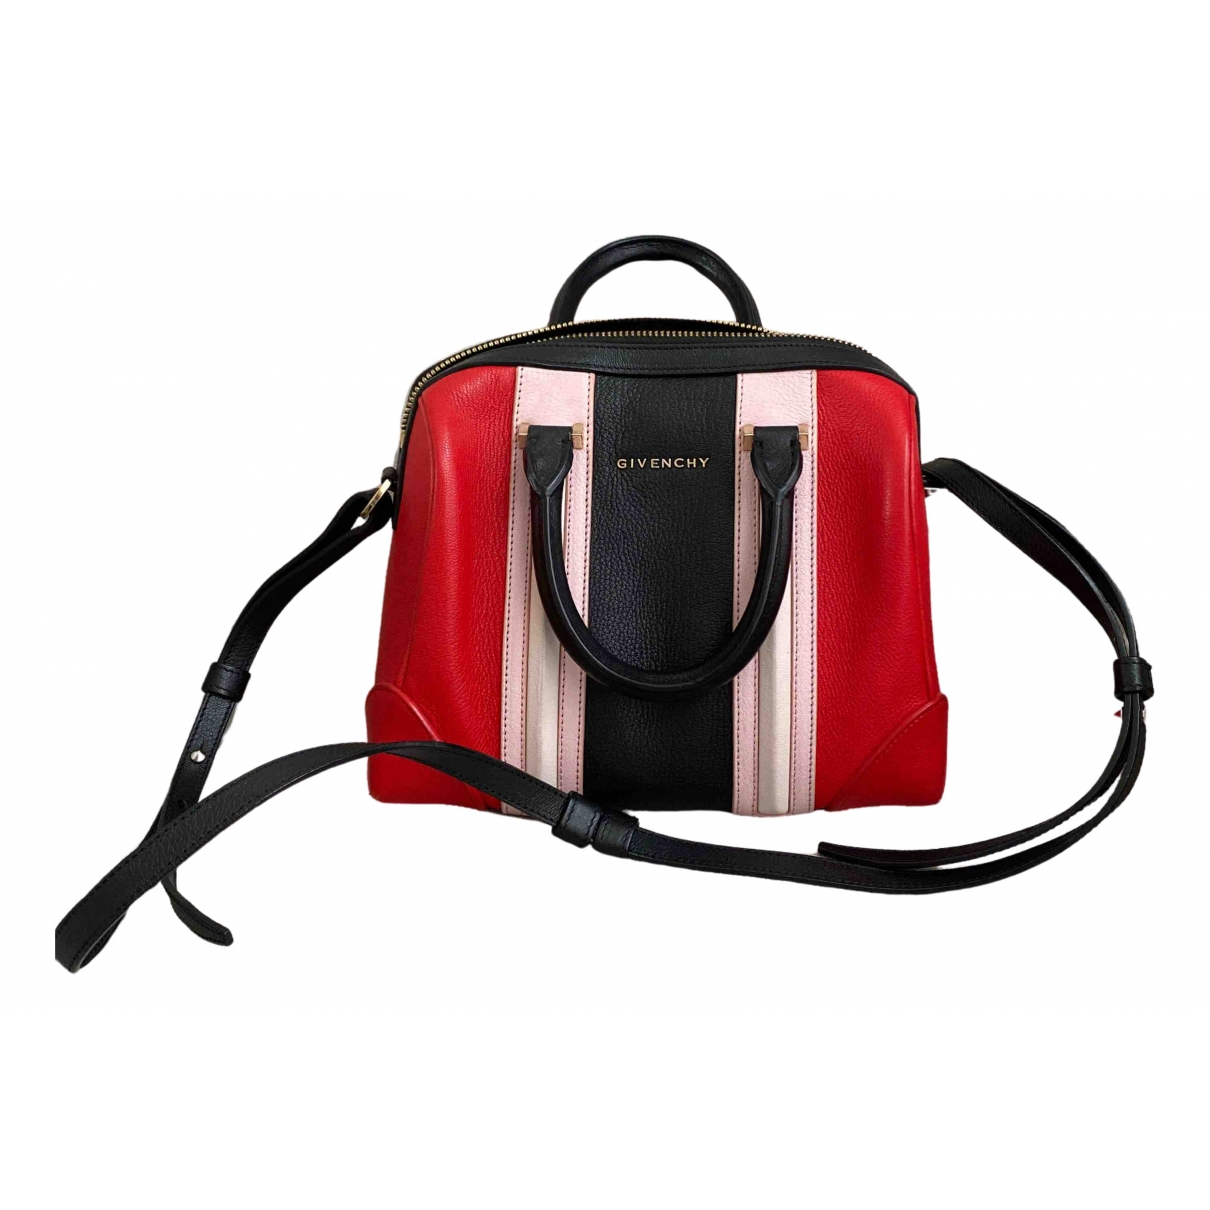 Givenchy Lucrezia Red Leather handbag for Women \N